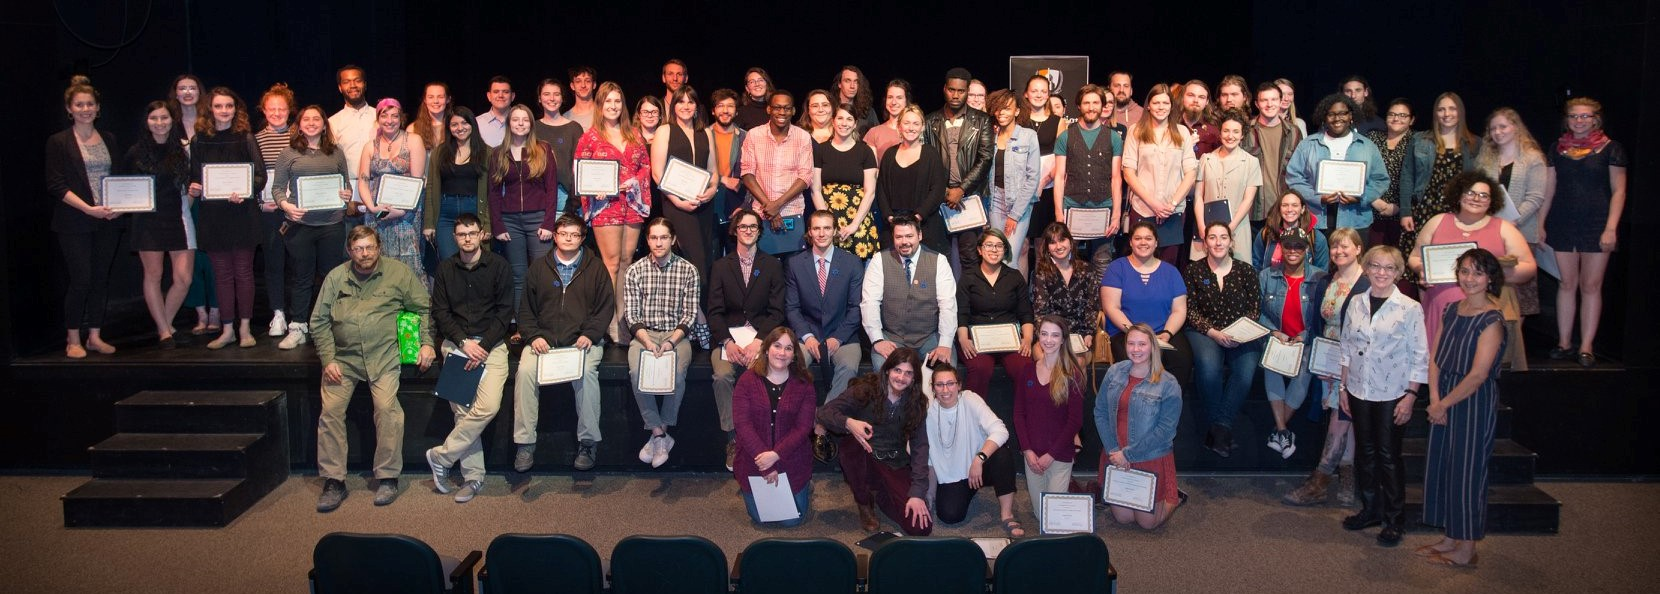 2019 award and scholarship winners